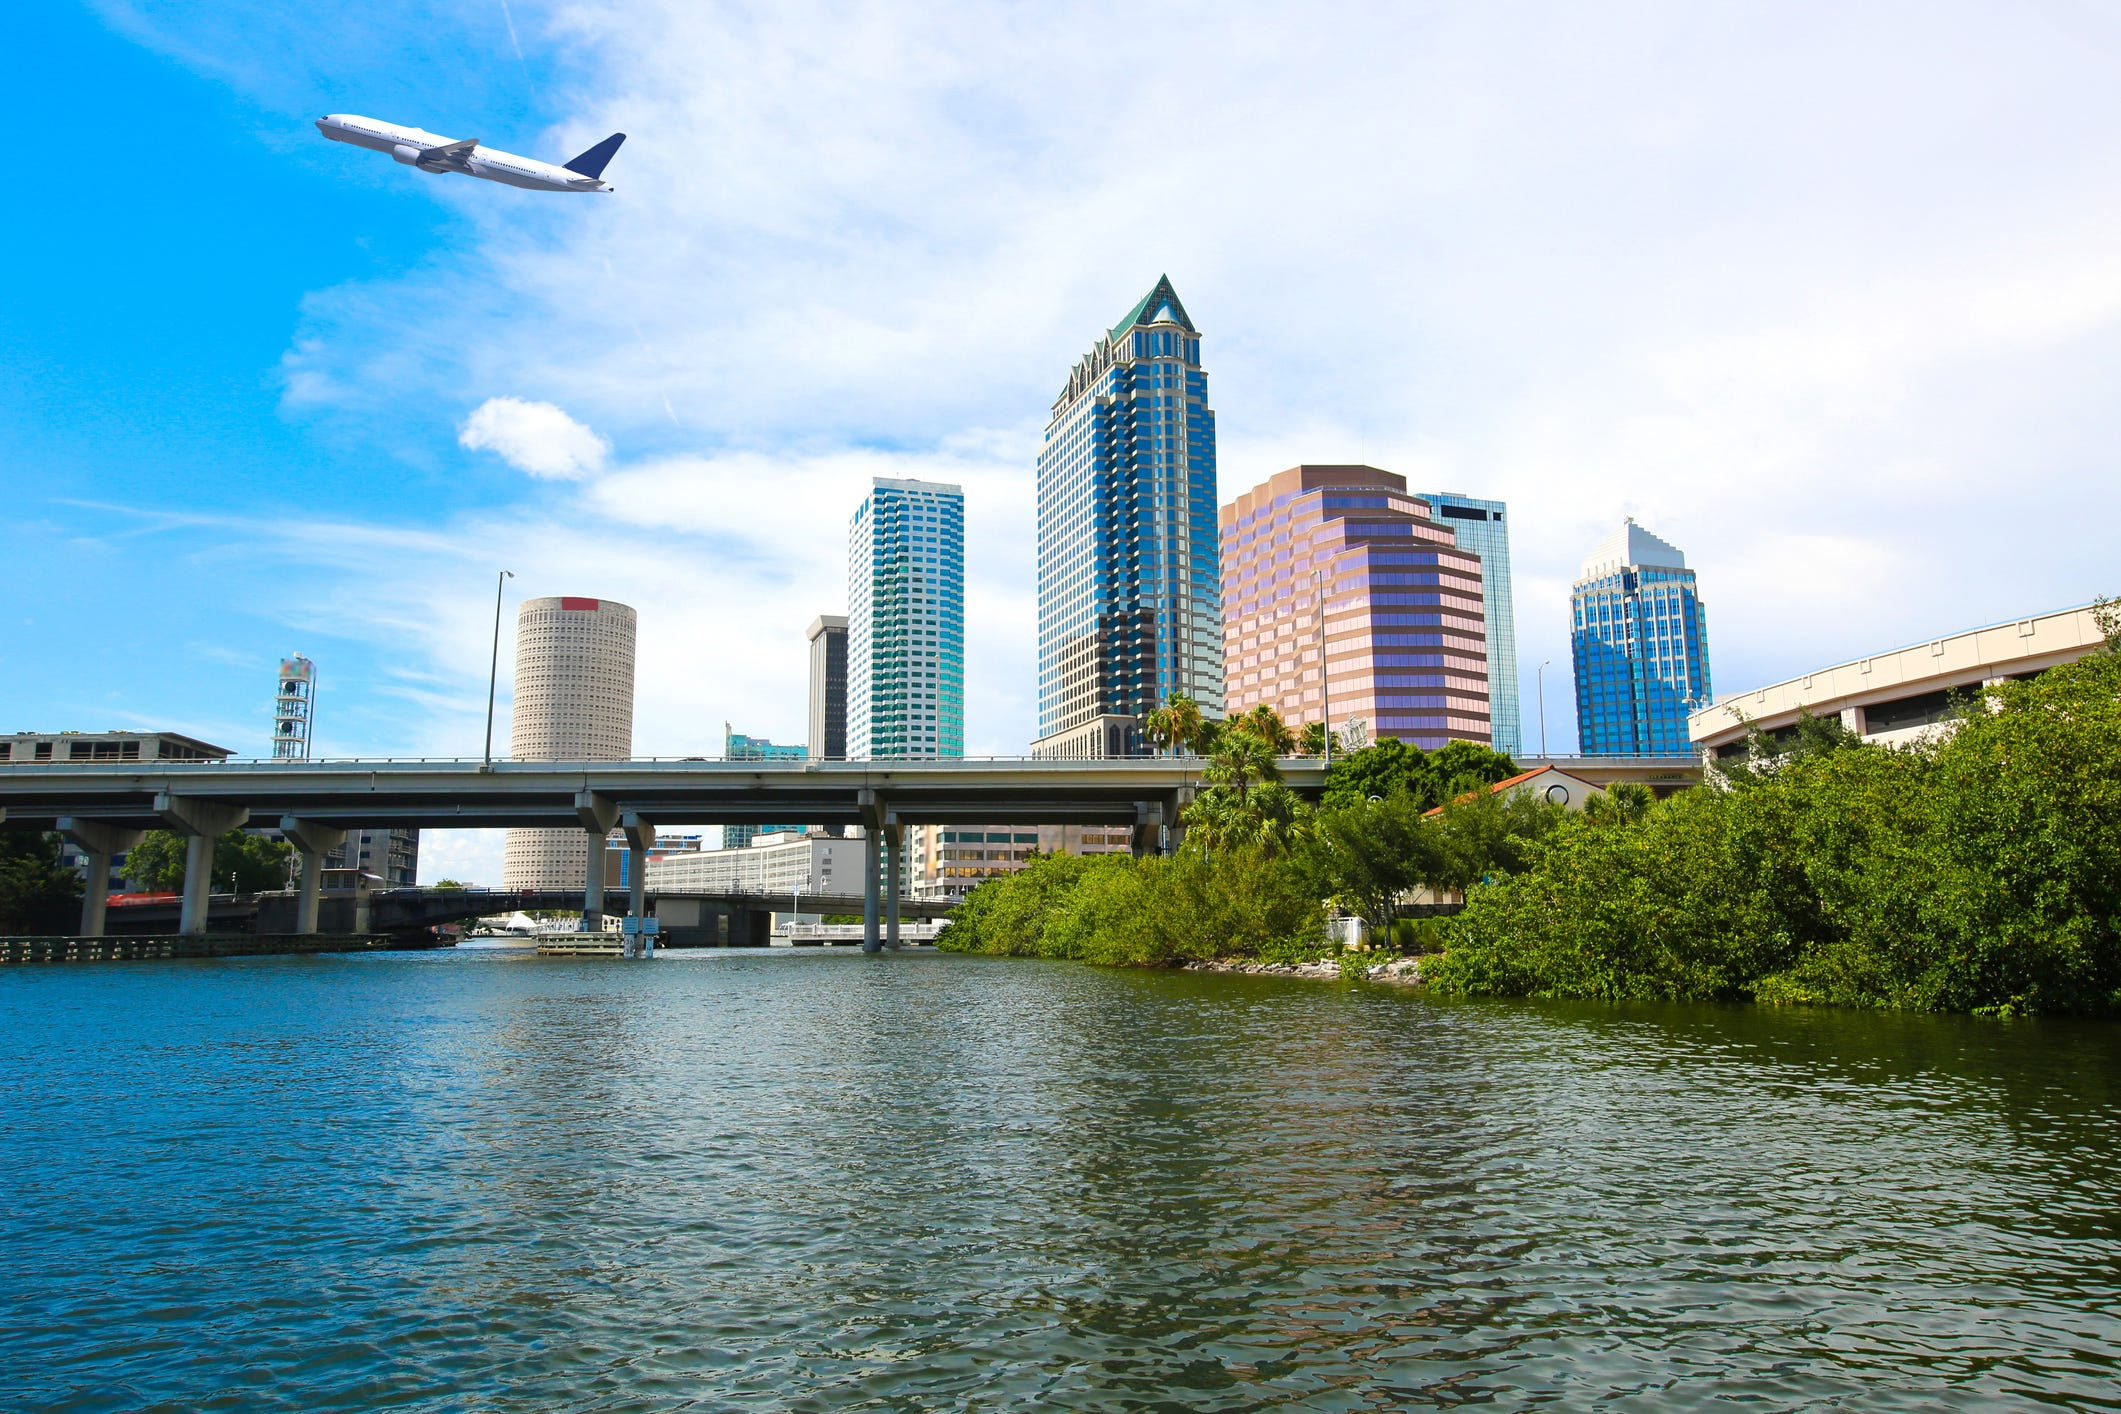 Tampa International Airport says its the first US airport to offer COVID-19 testing to all passengers